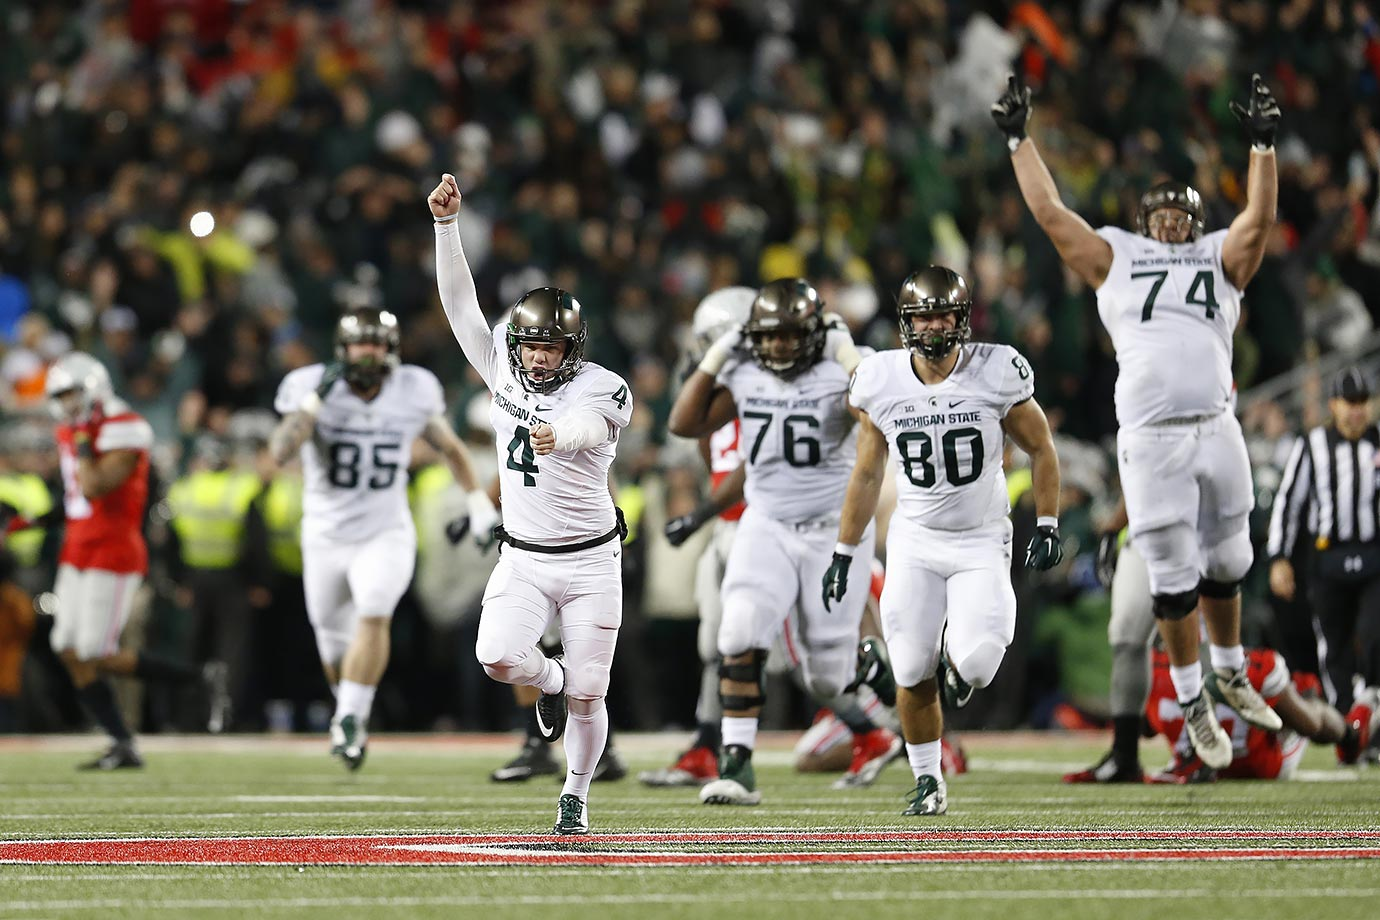 The Spartans, playing without an injured Connor Cook, came into Columbus and took down the undefeated Buckeyes on a 41-yard field goal from Michael Geiger as time expired to end Ohio State's 23-game winning streak. (Geiger's boot and windmill celebration made him a celebrity around East Lansing.) The win put Sparty in prime position to win the Big Ten East (which it later did), while essentially knocking the Buckeyes from College Football Playoff contention. Michigan State also shut down star running back Ezekiel Elliott, who rushed only 12 times for 33 yards and voiced his unrest afterward with Urban Meyer and the coaching staff's game plan.